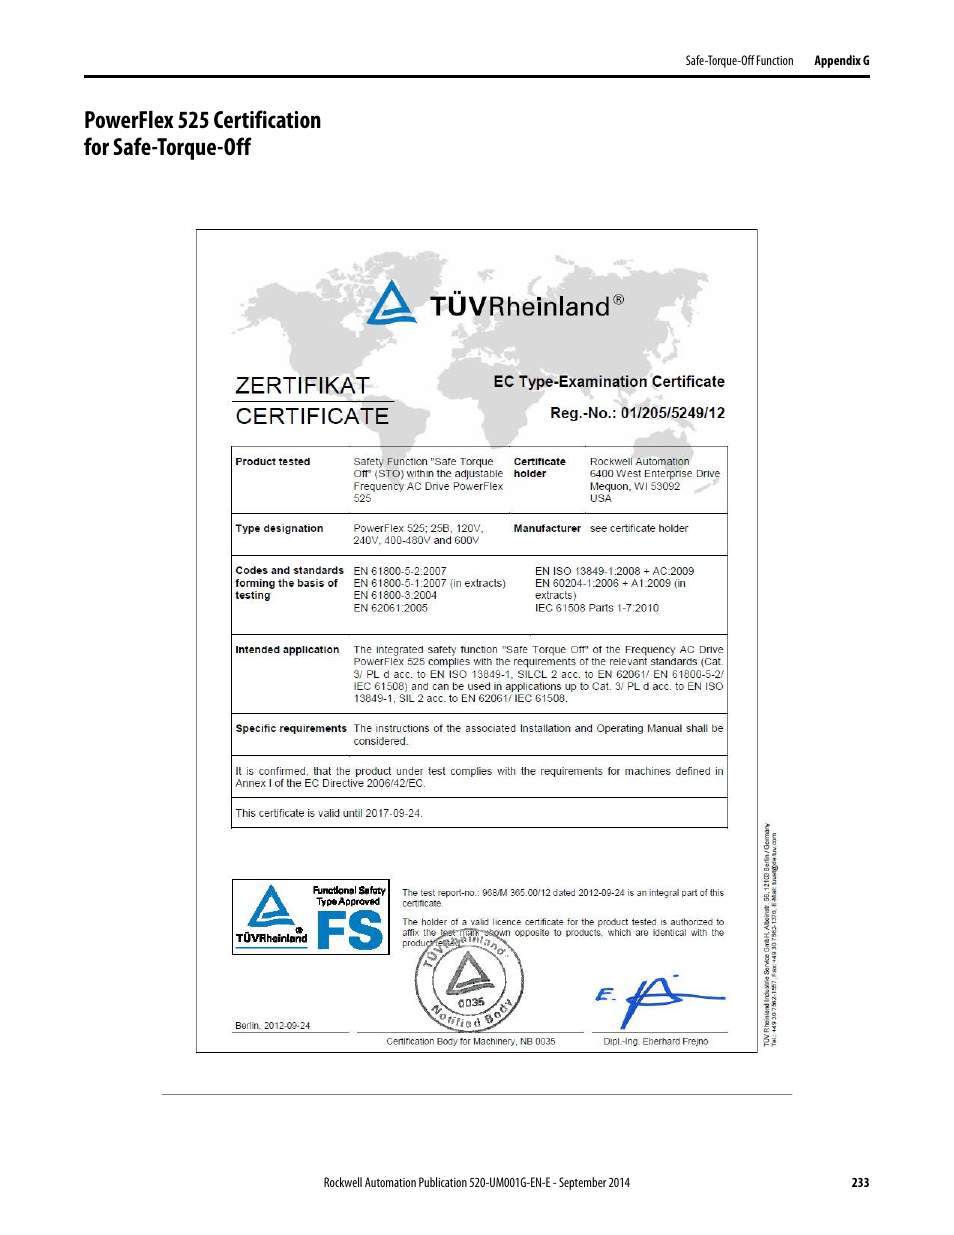 Powerflex 525 Certification For Safe Manual Guide